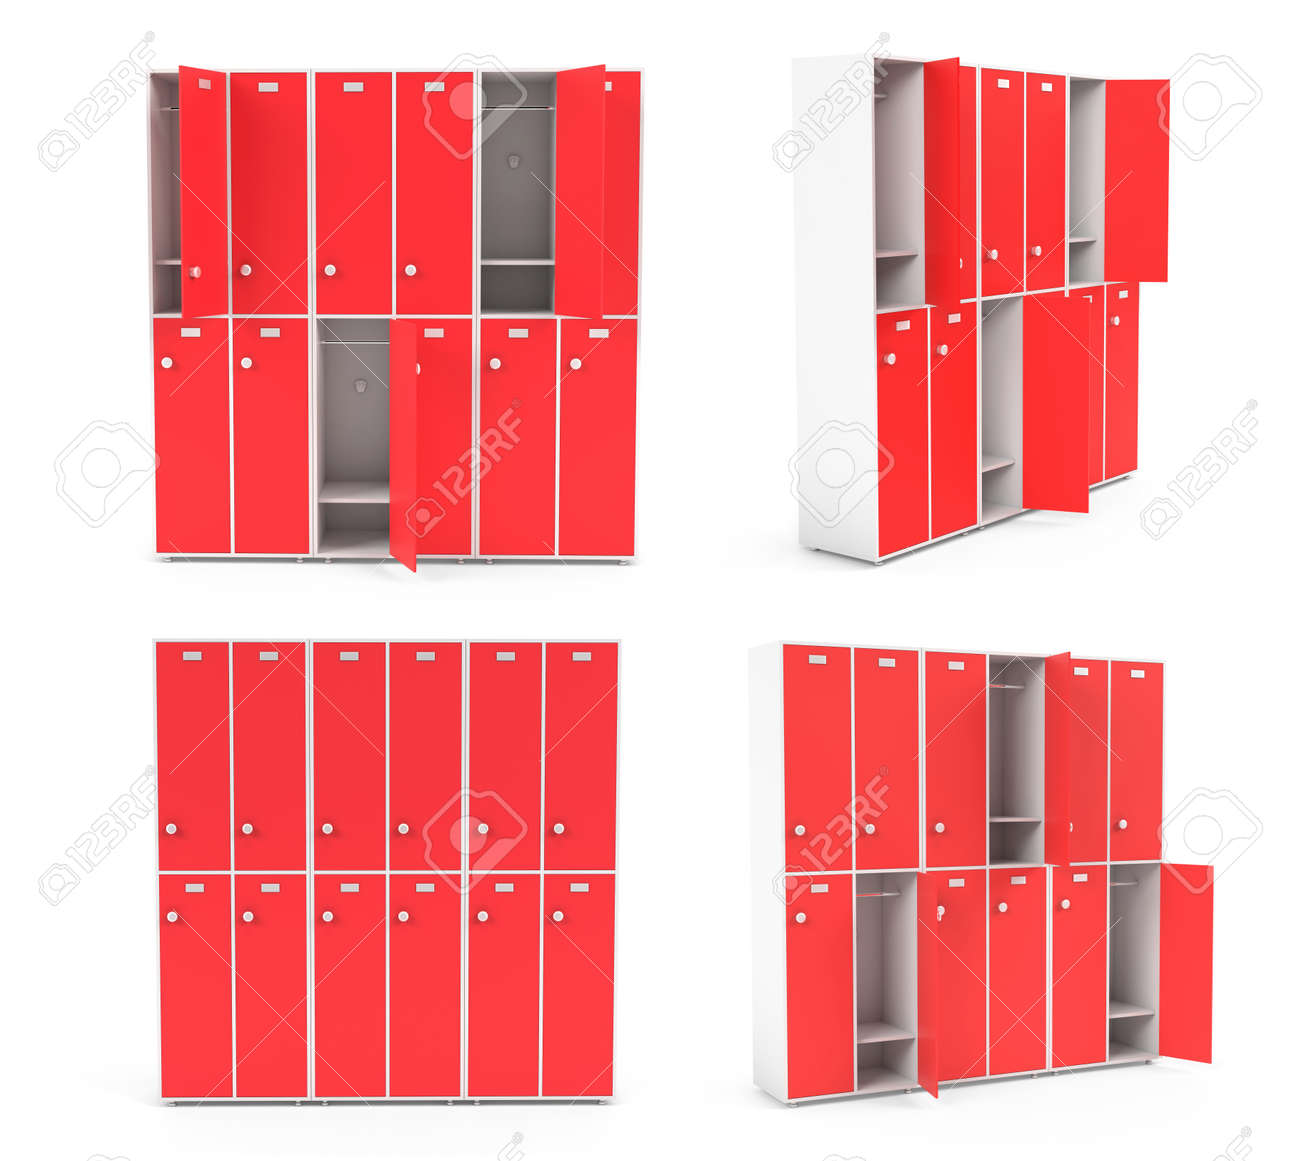 Red lockers for schoool or gym. Set of closed and open sections. 3d rendering illustration isolated on white background - 150521374